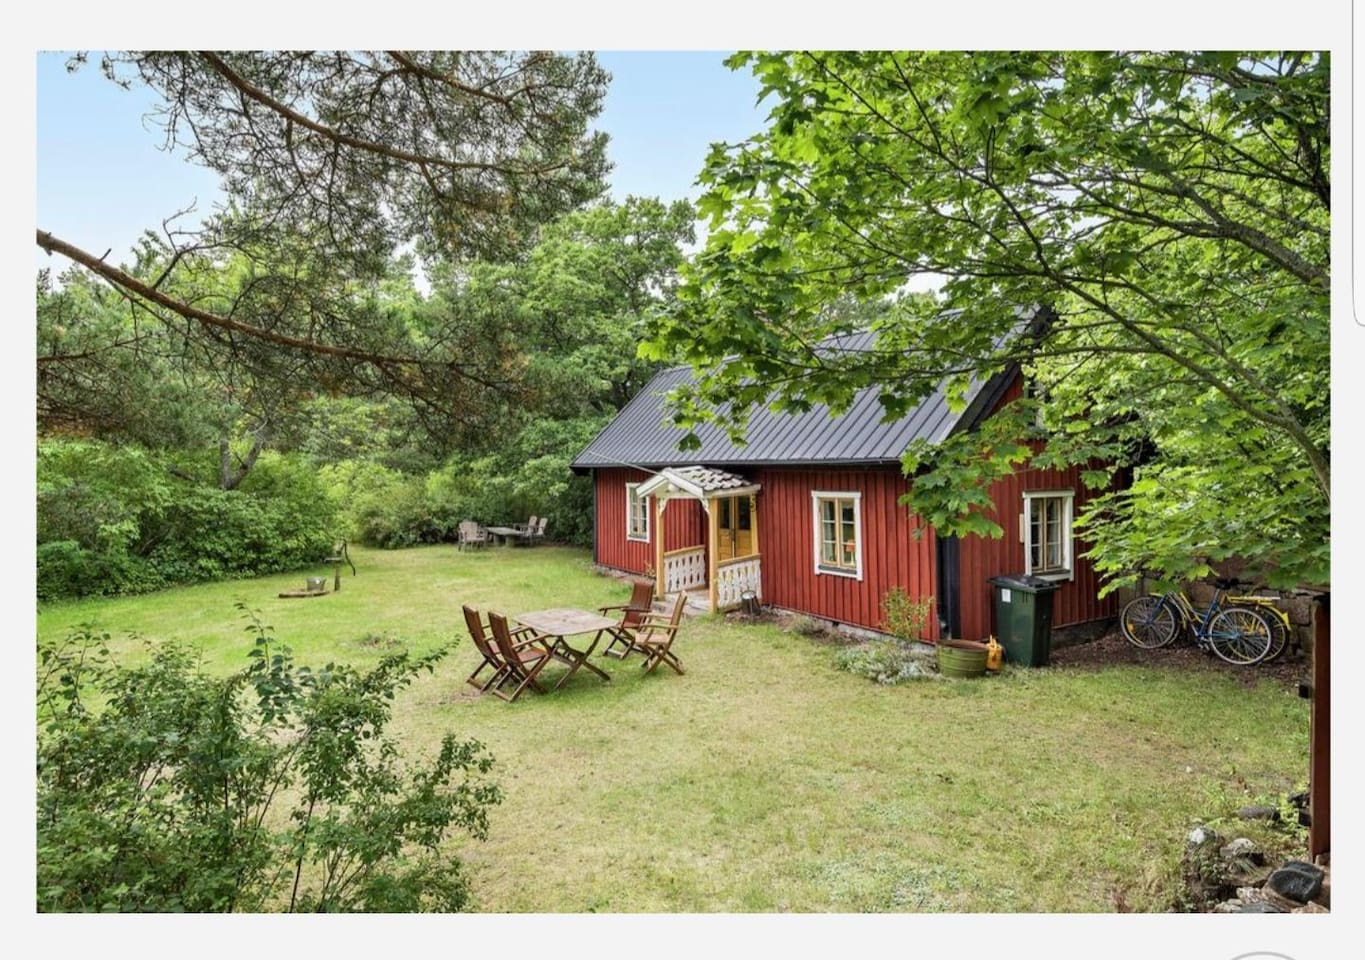 Niklastorpet - genuine small farmhouse originating in the 18th century. Dining room still with original wooden walls, renovated kitchen and sleeping loft